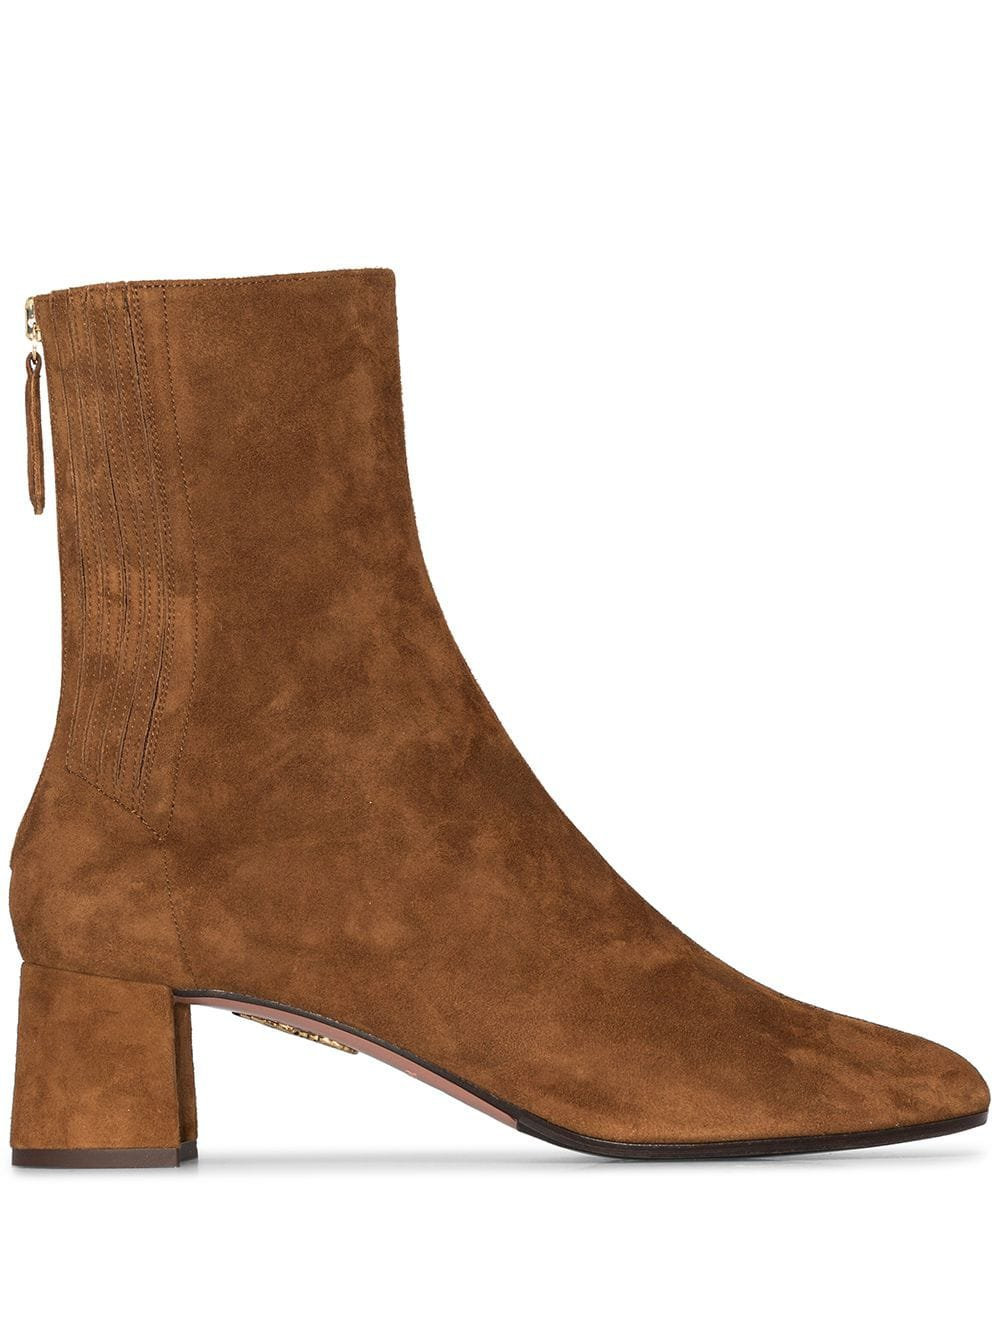 Aquazzura Camel Brown Saint Honore 50 Suede Ankle Boots - Farfetch